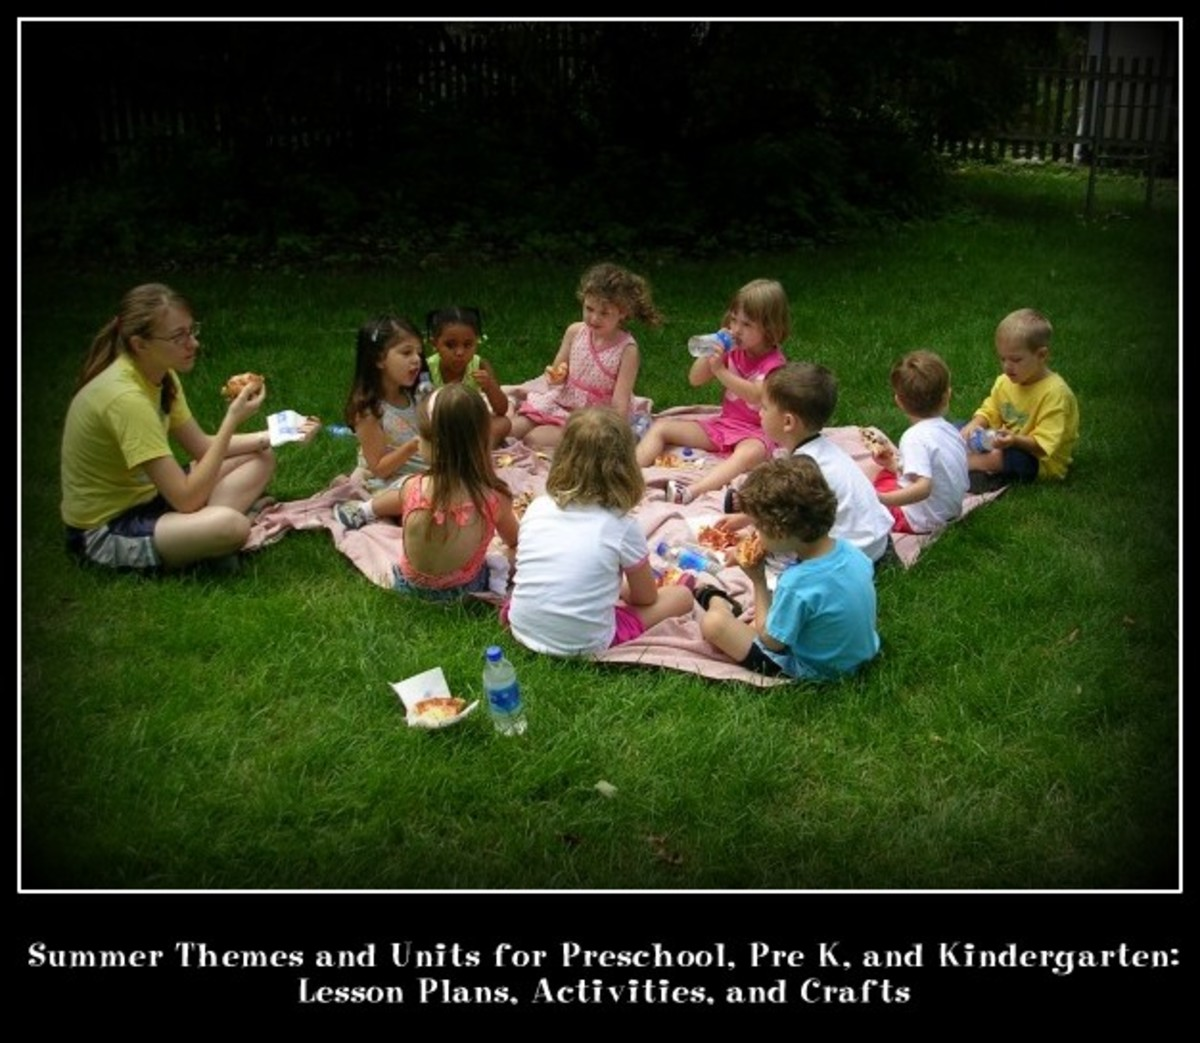 summer-themes-units-for-preschool-pre-k-kindergarten-lesson-plans-activities-crafts